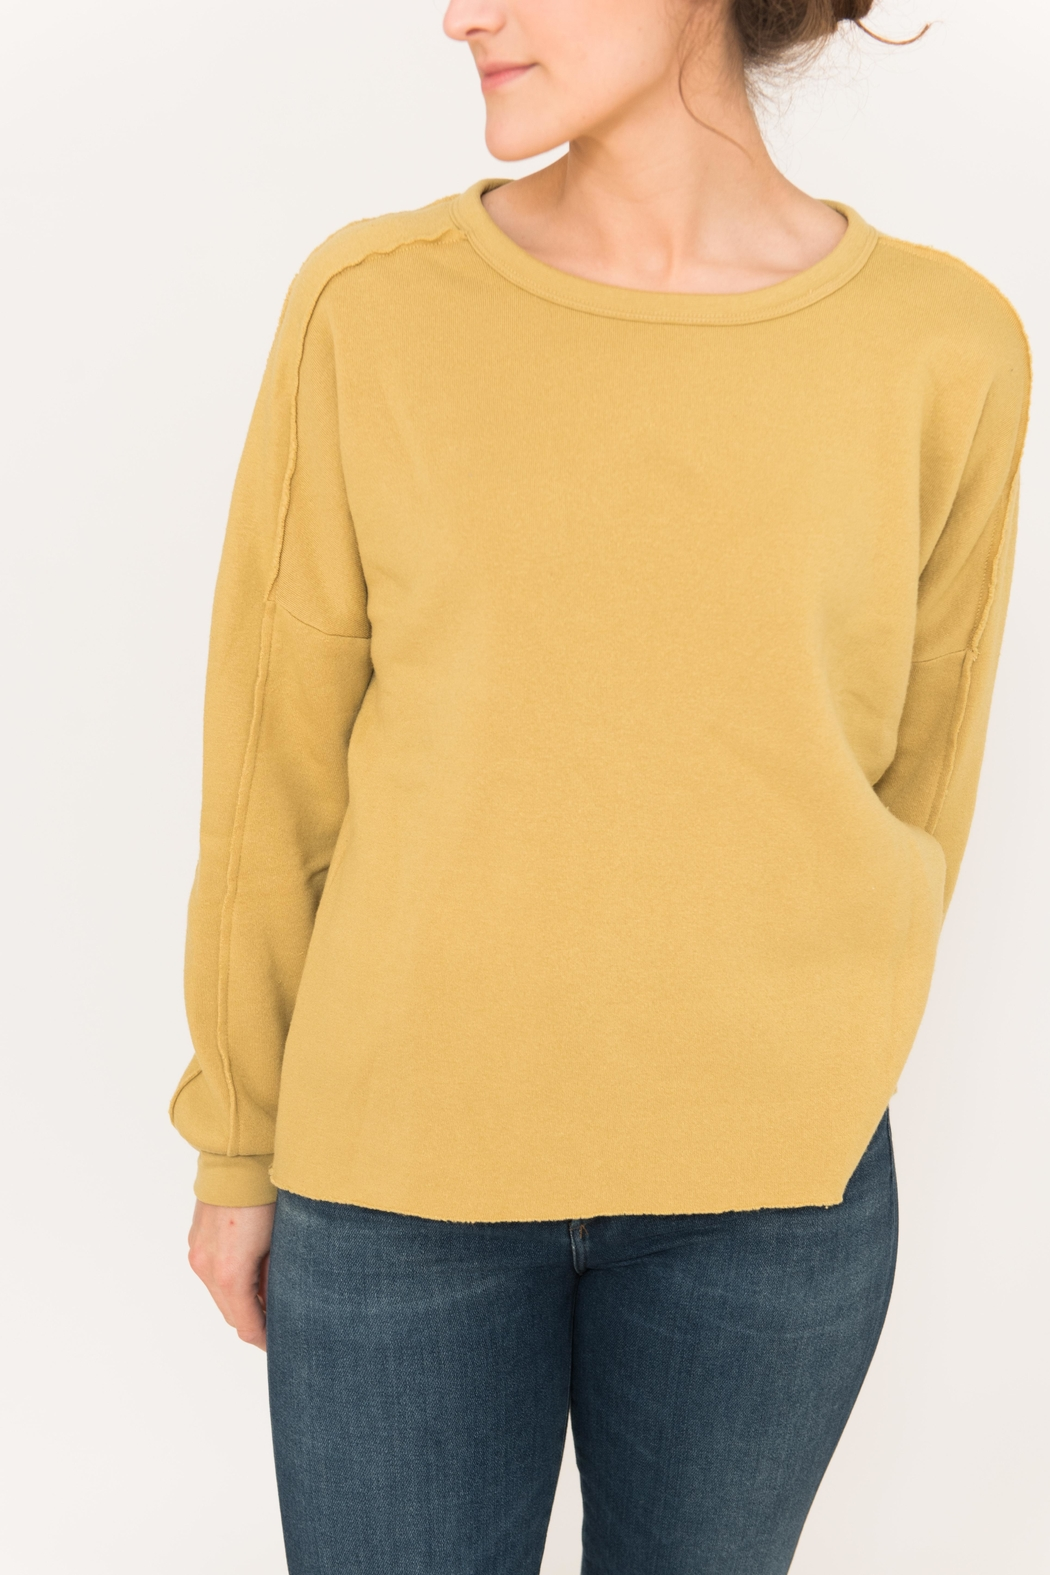 Project Social T Paw Paneled Sweatshirt - Side Cropped Image